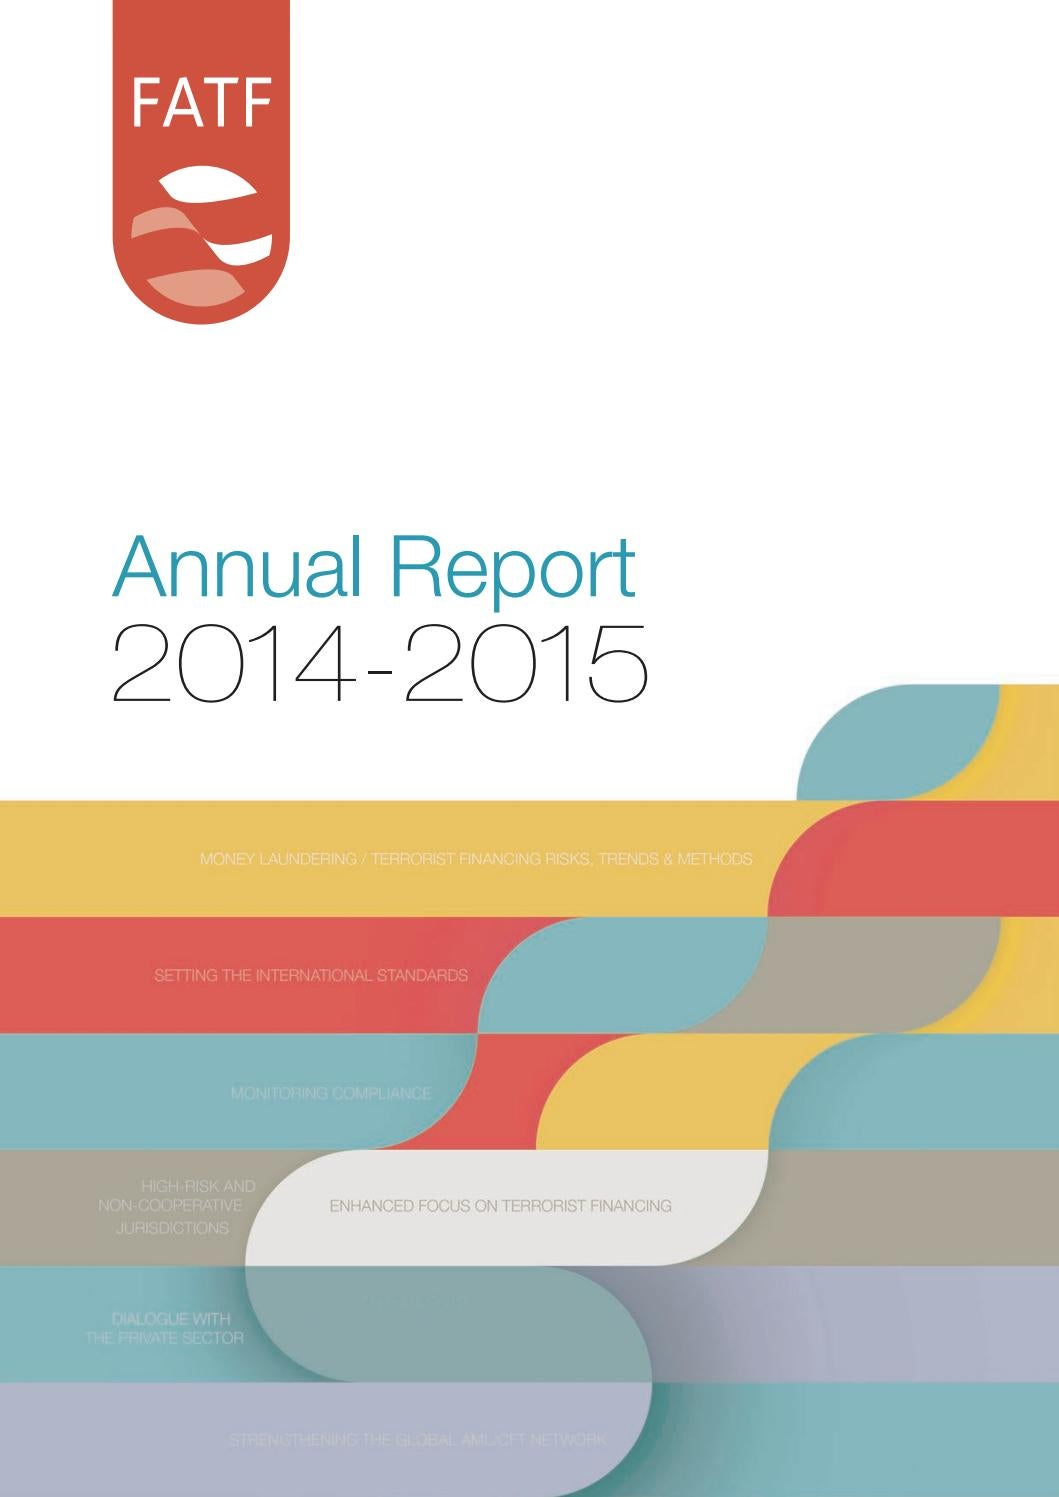 Documents Financial Action Task Force FATF – Annual Report